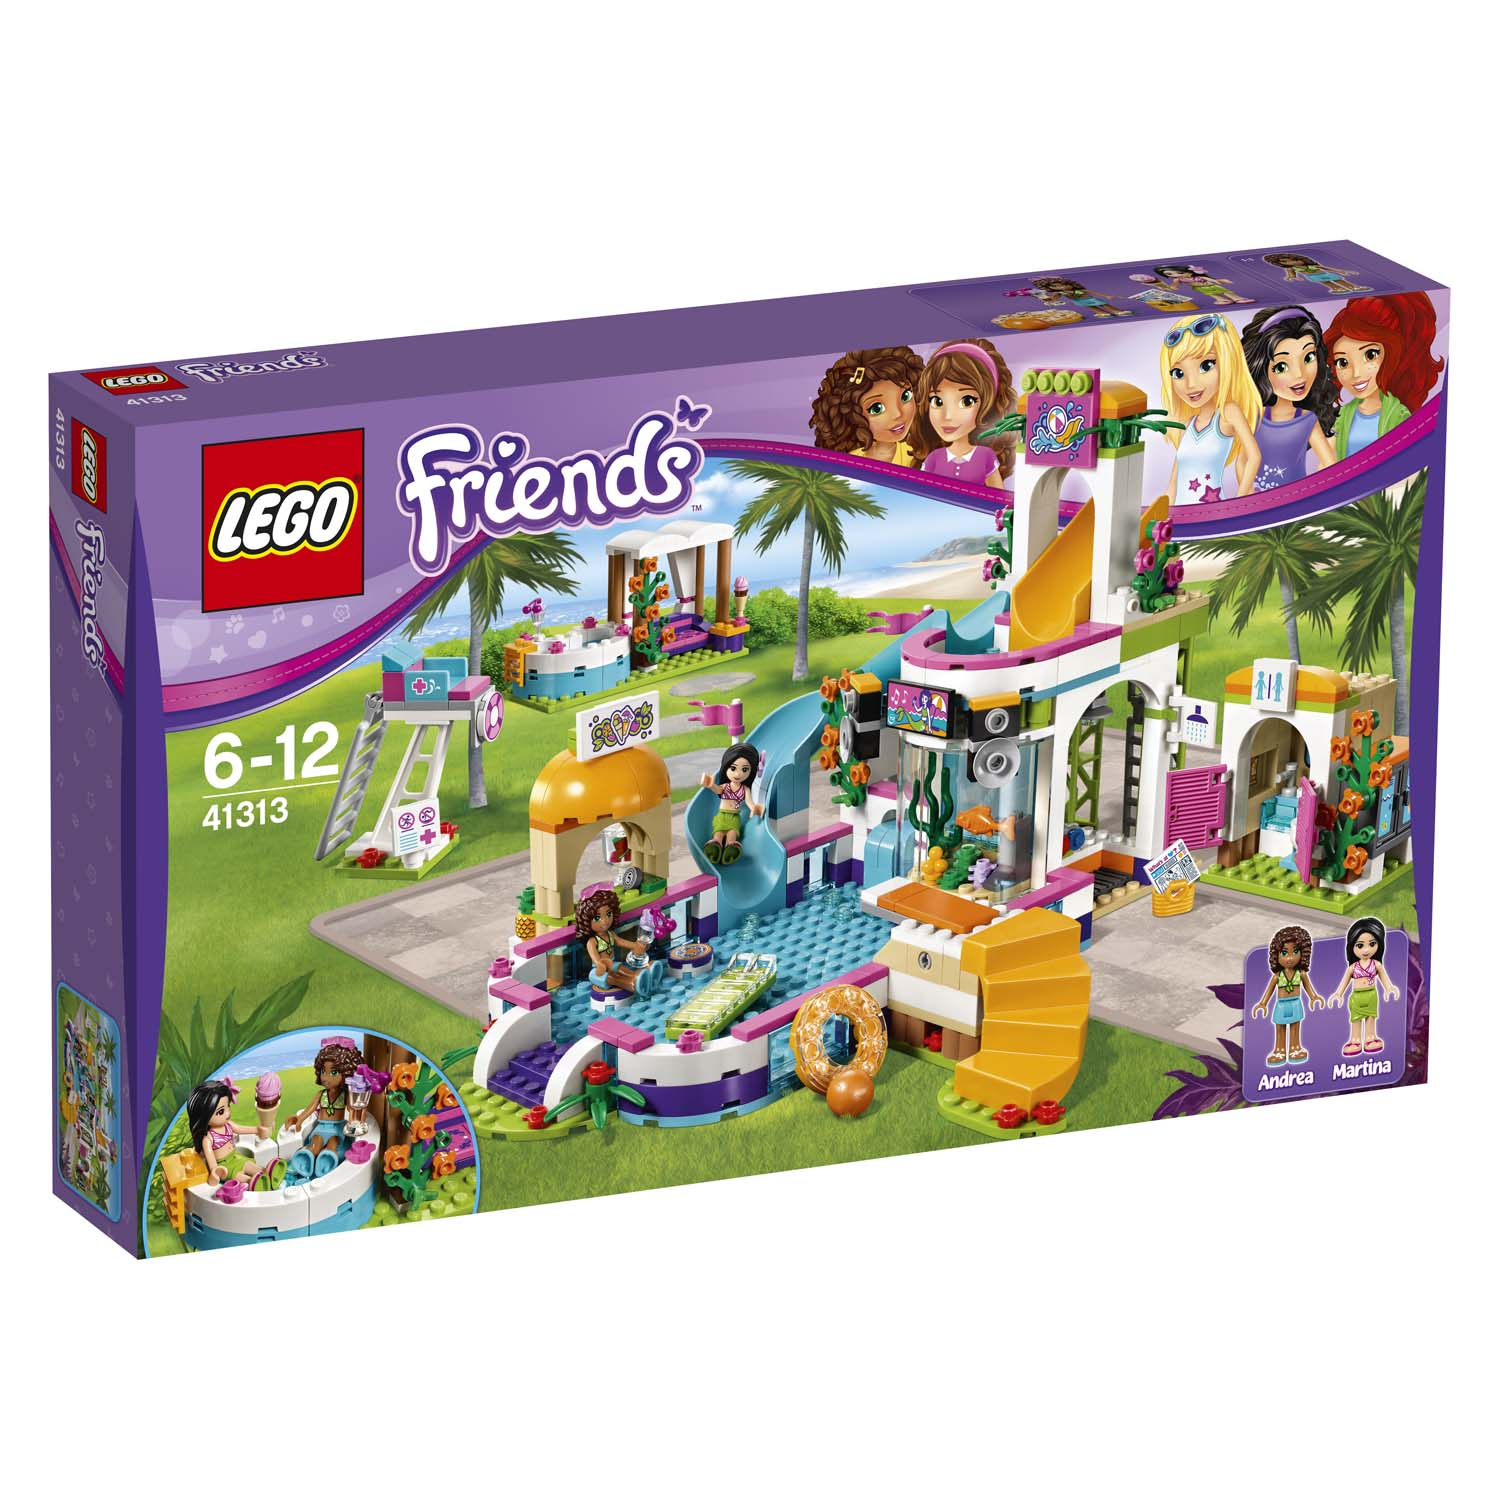 Lego Friends La Piscina Lego Friends La Piscina All 39aperto Di Heartlake 41313